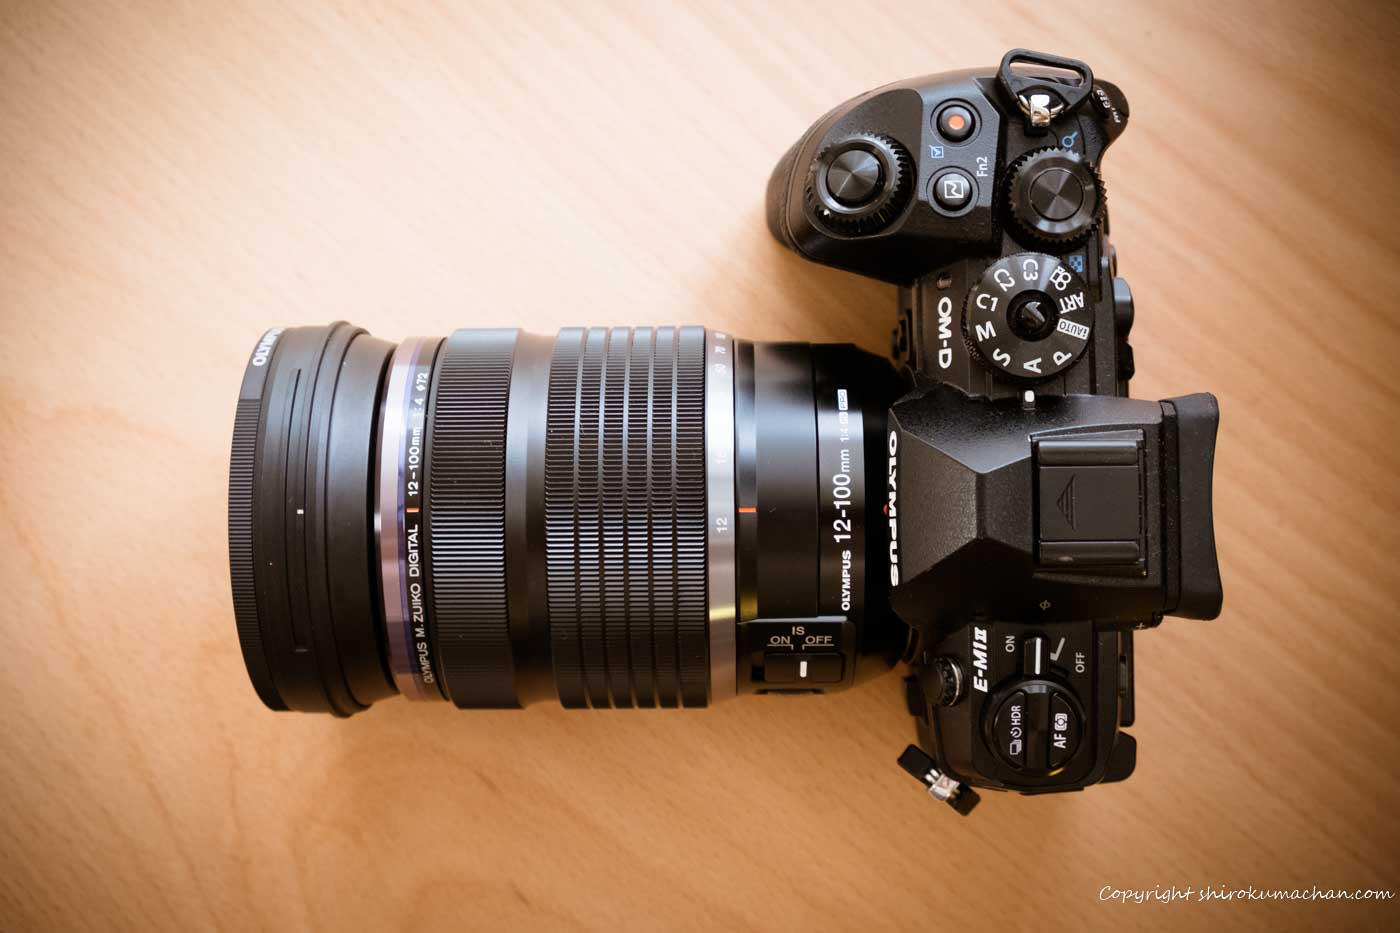 M.Zuiko 12 100 with OMD EM1 Mark2